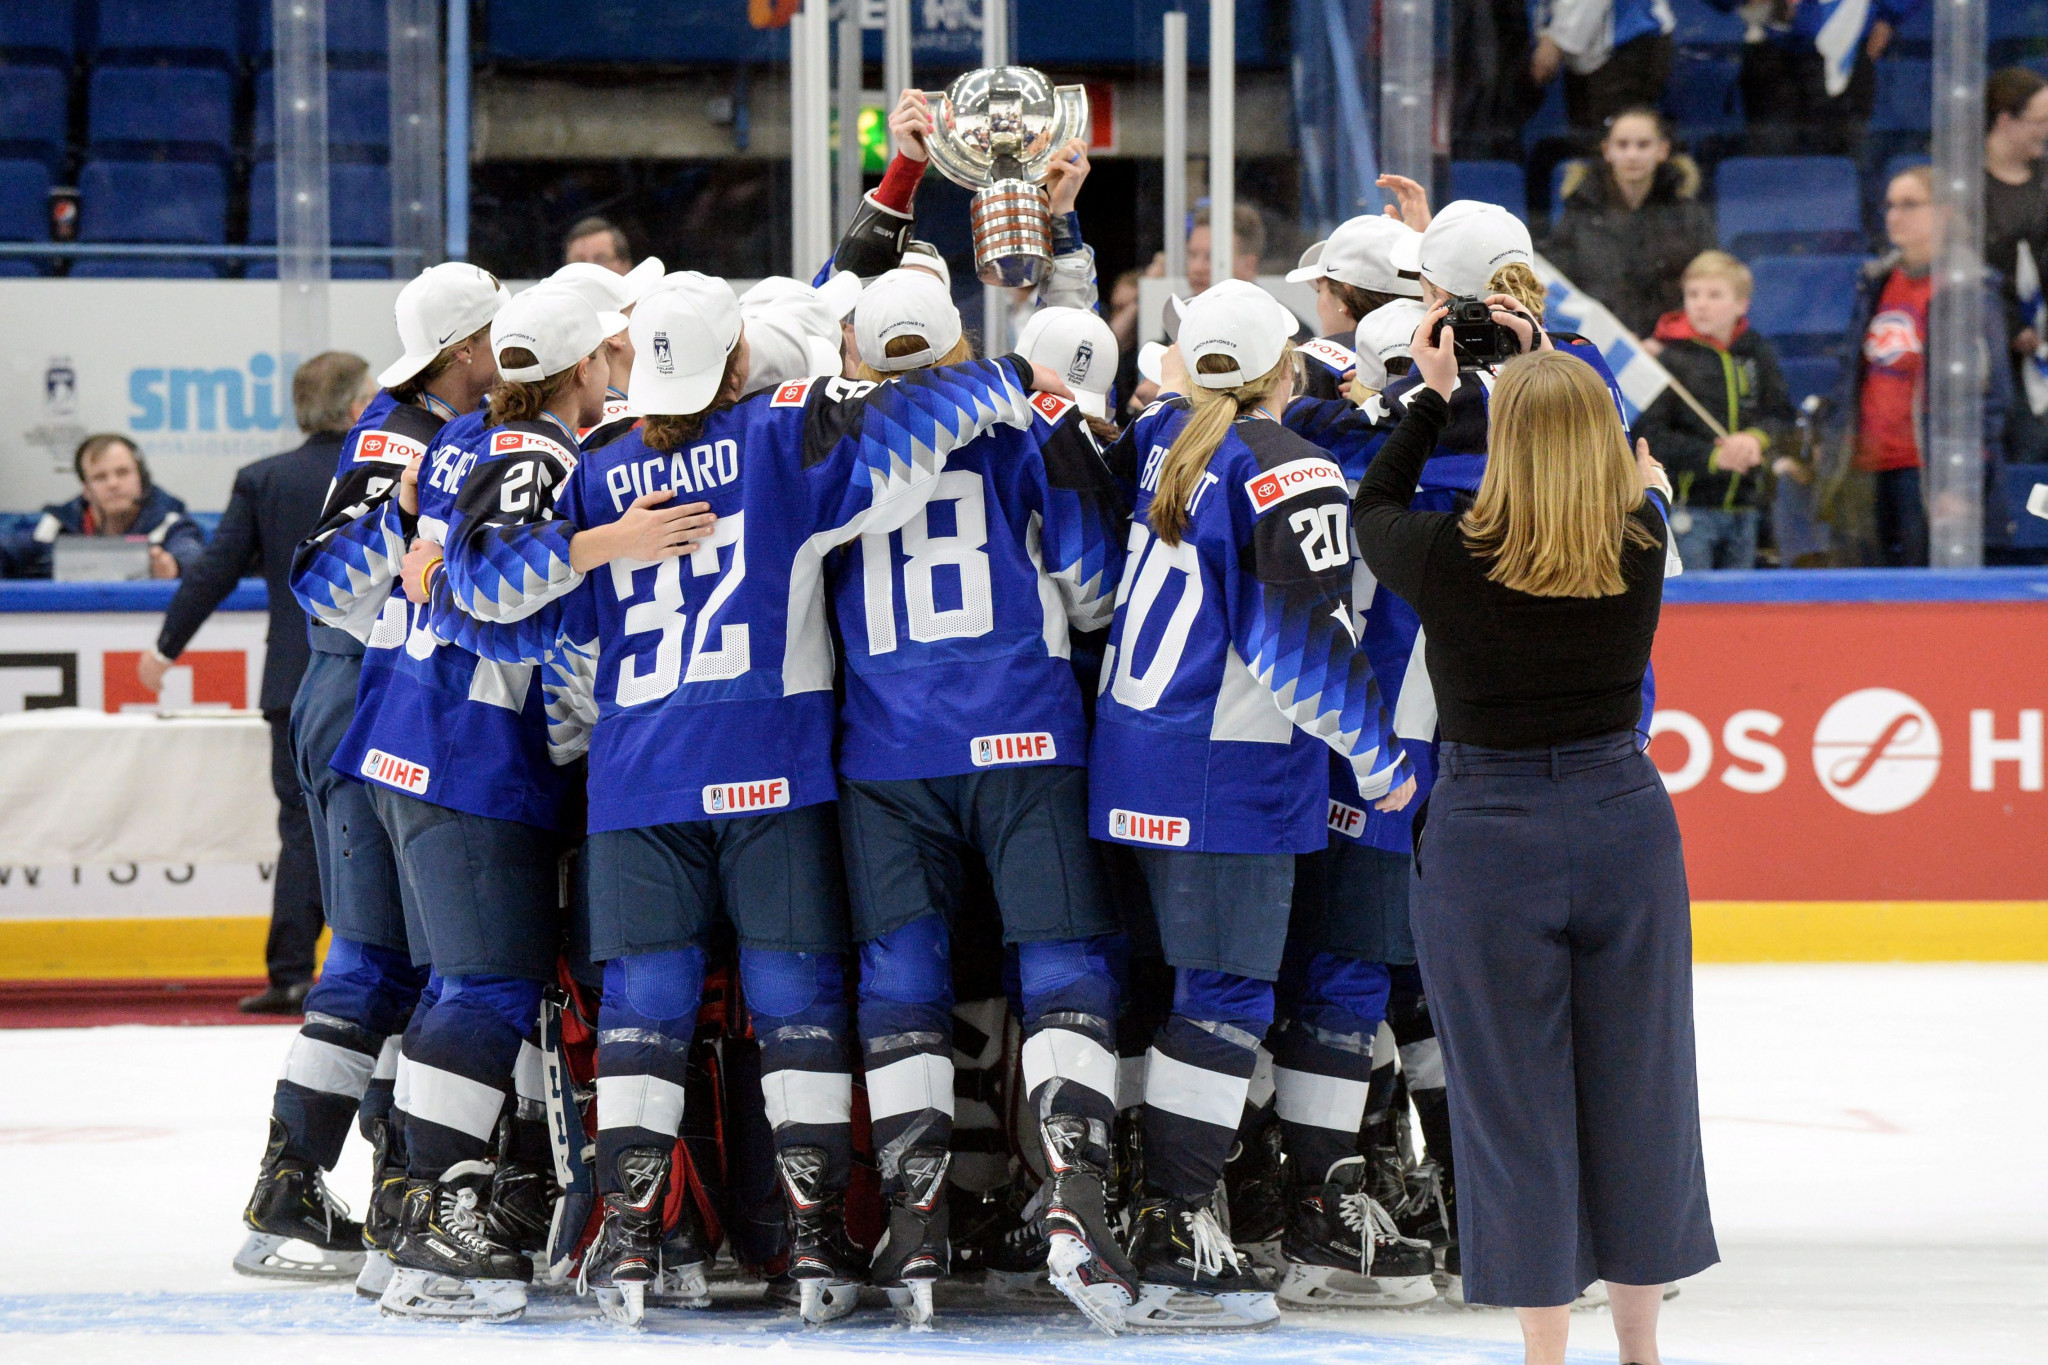 The Women's World Ice Hockey Championship has been further postponed because of safety concerns surrounding the coronavirus pandemic ©Getty Images